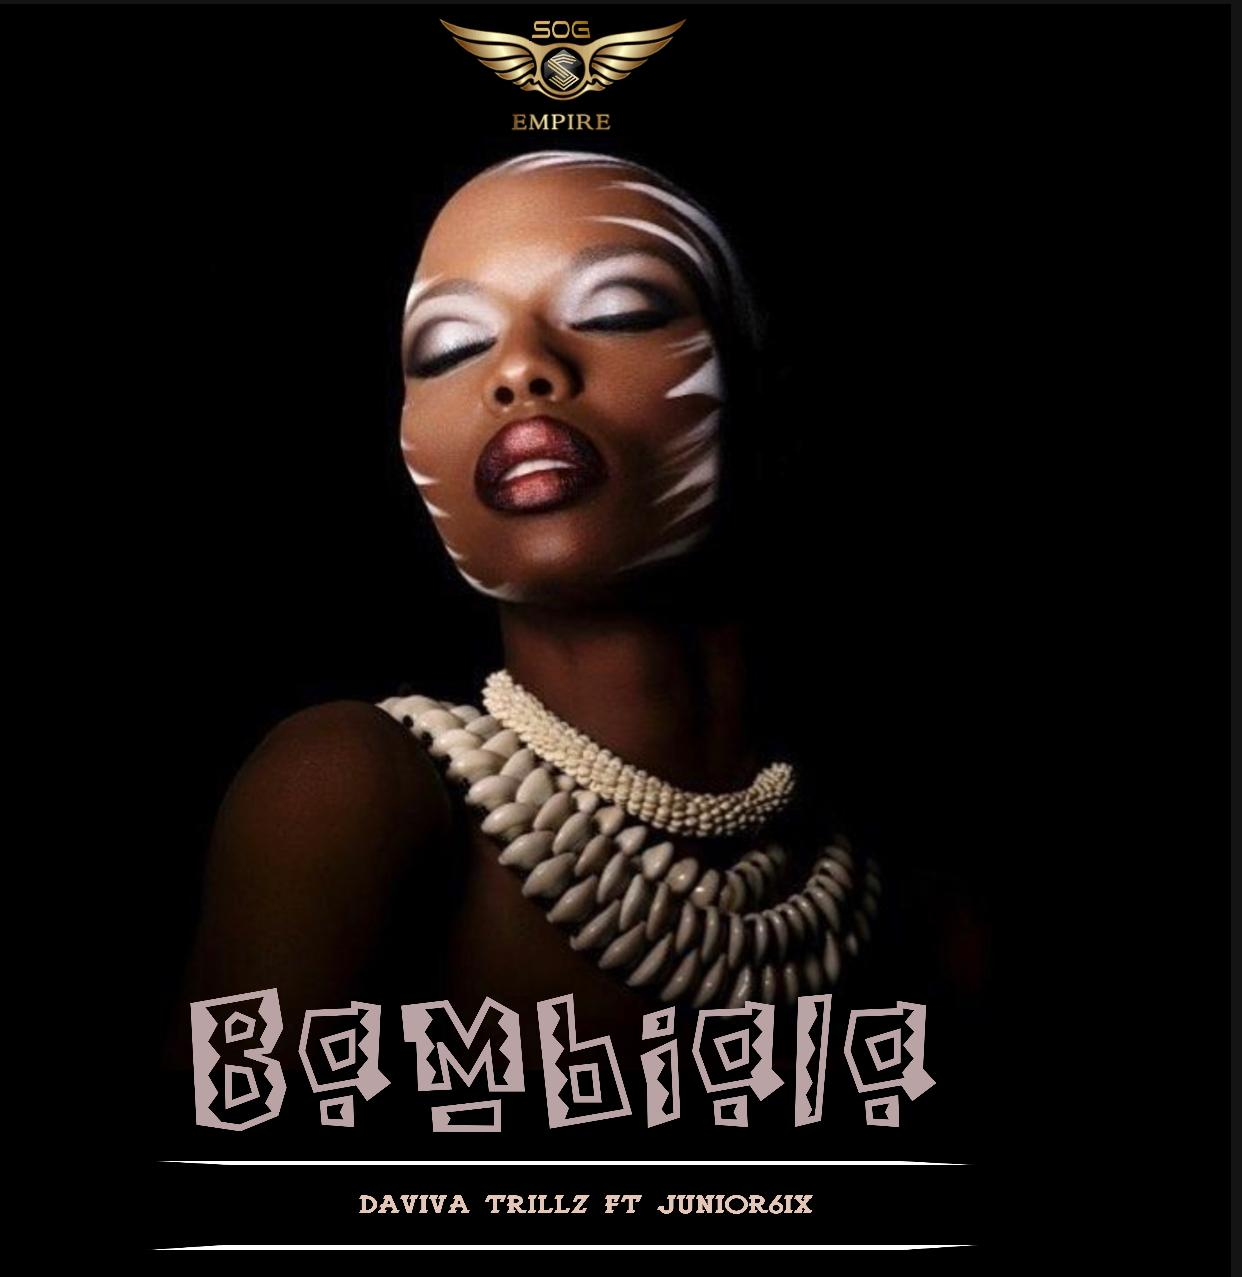 Music: Daviva Trillz X Junior6ix- Bambiala